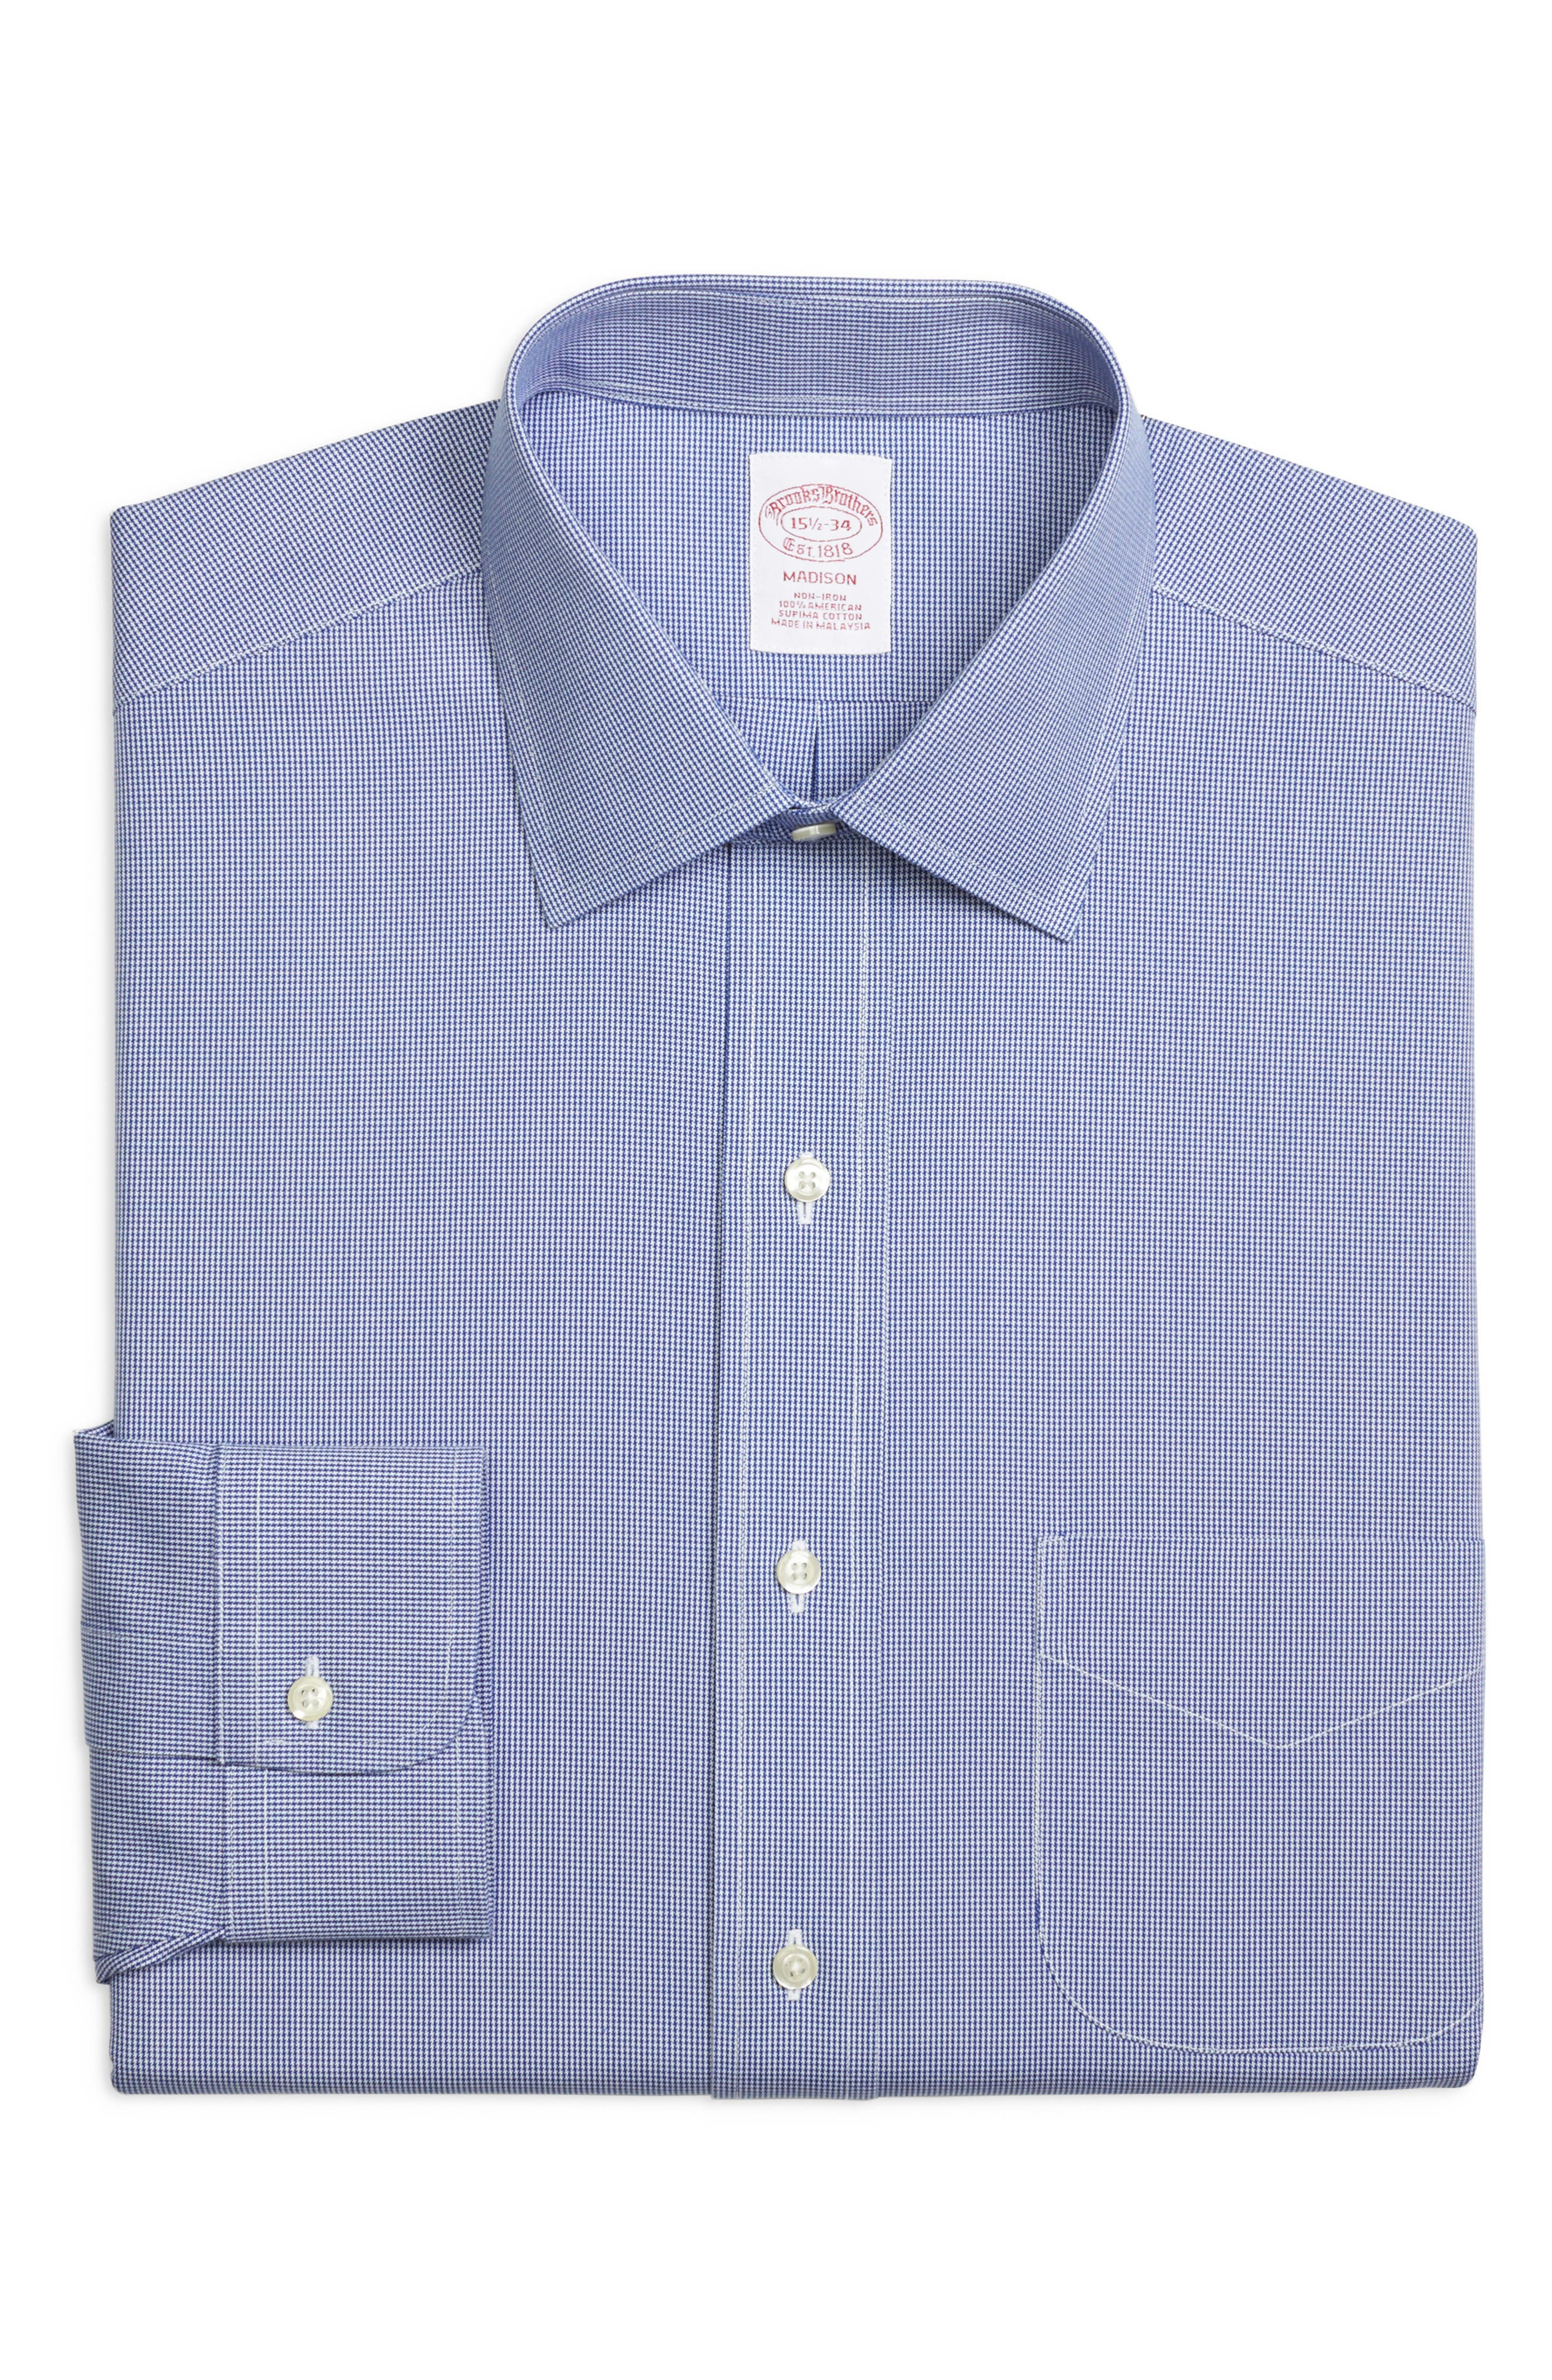 Classic Fit Houndstooth Dress Shirt,                         Main,                         color, BLUE